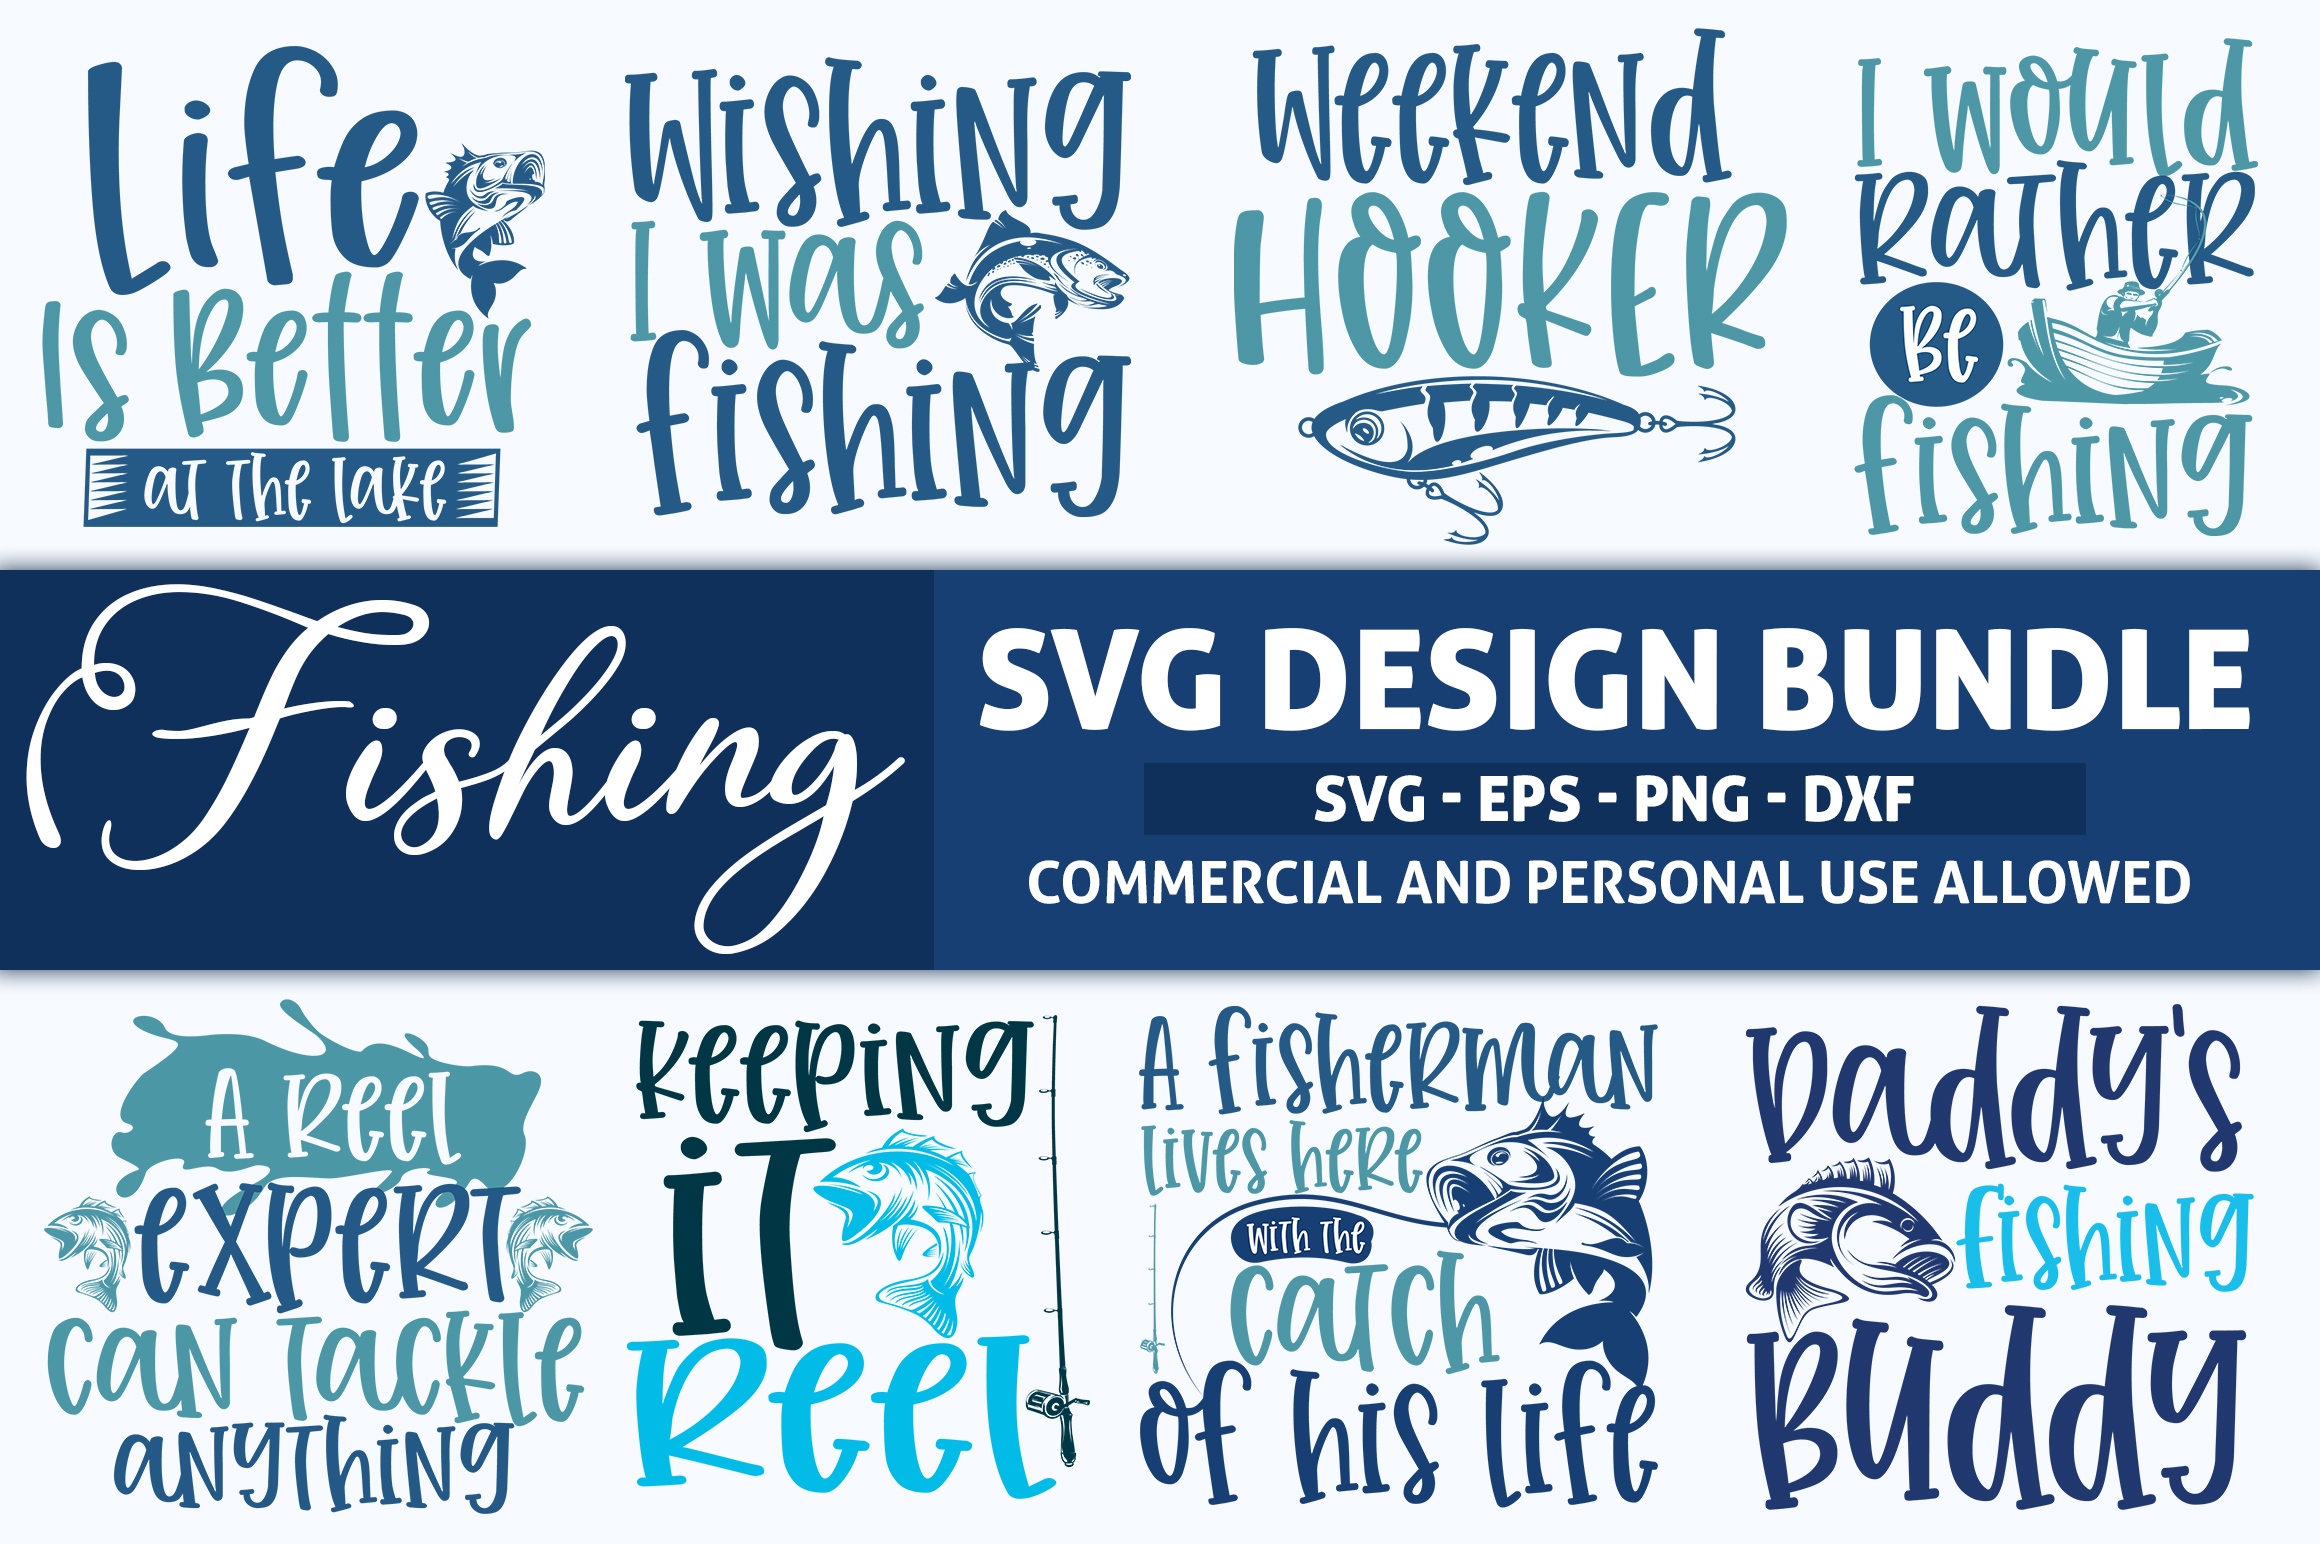 510 SVG DESIGN THE MIGHTY BUNDLE |32 DIFFERENT BUNDLES example image 3